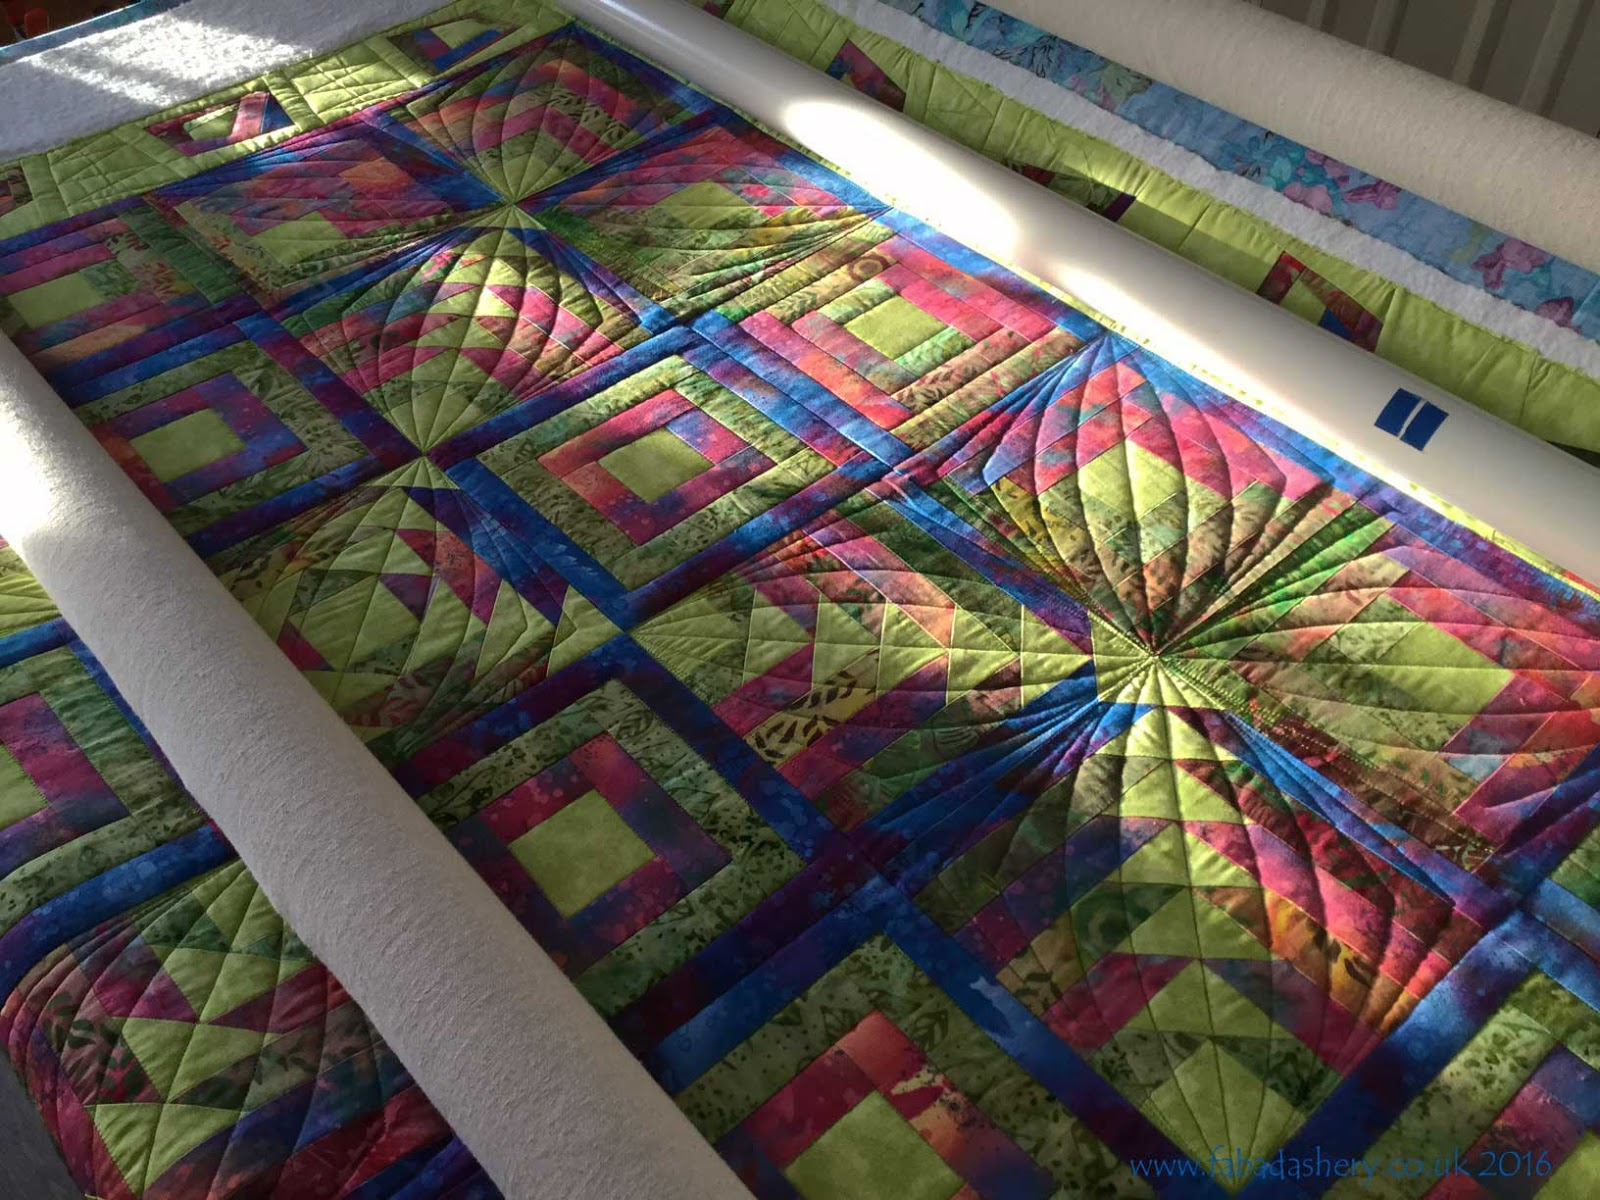 Modern Hand Quilting Patterns : Fabadashery Longarm Quilting: Custom Quilting - combining digital patterns with hand guided ...